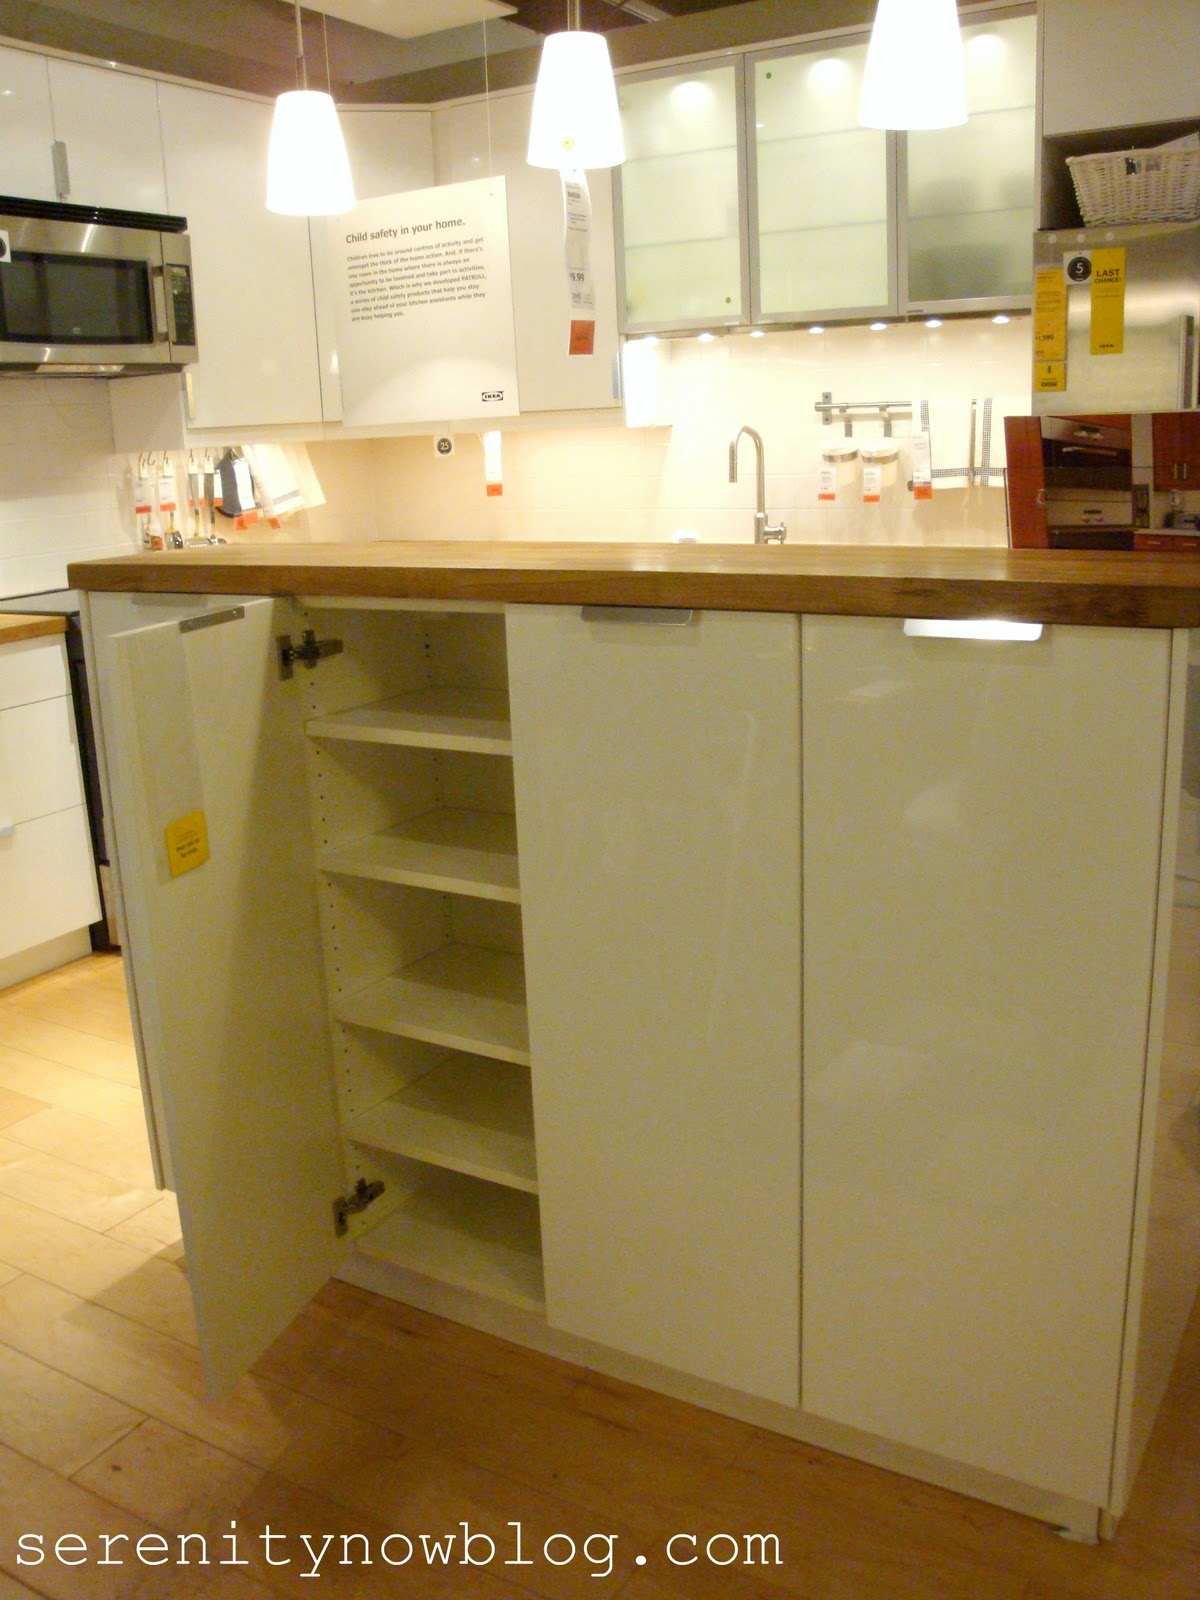 Making a kitchen island from ikea cabinets. modern. fotos ikea ...